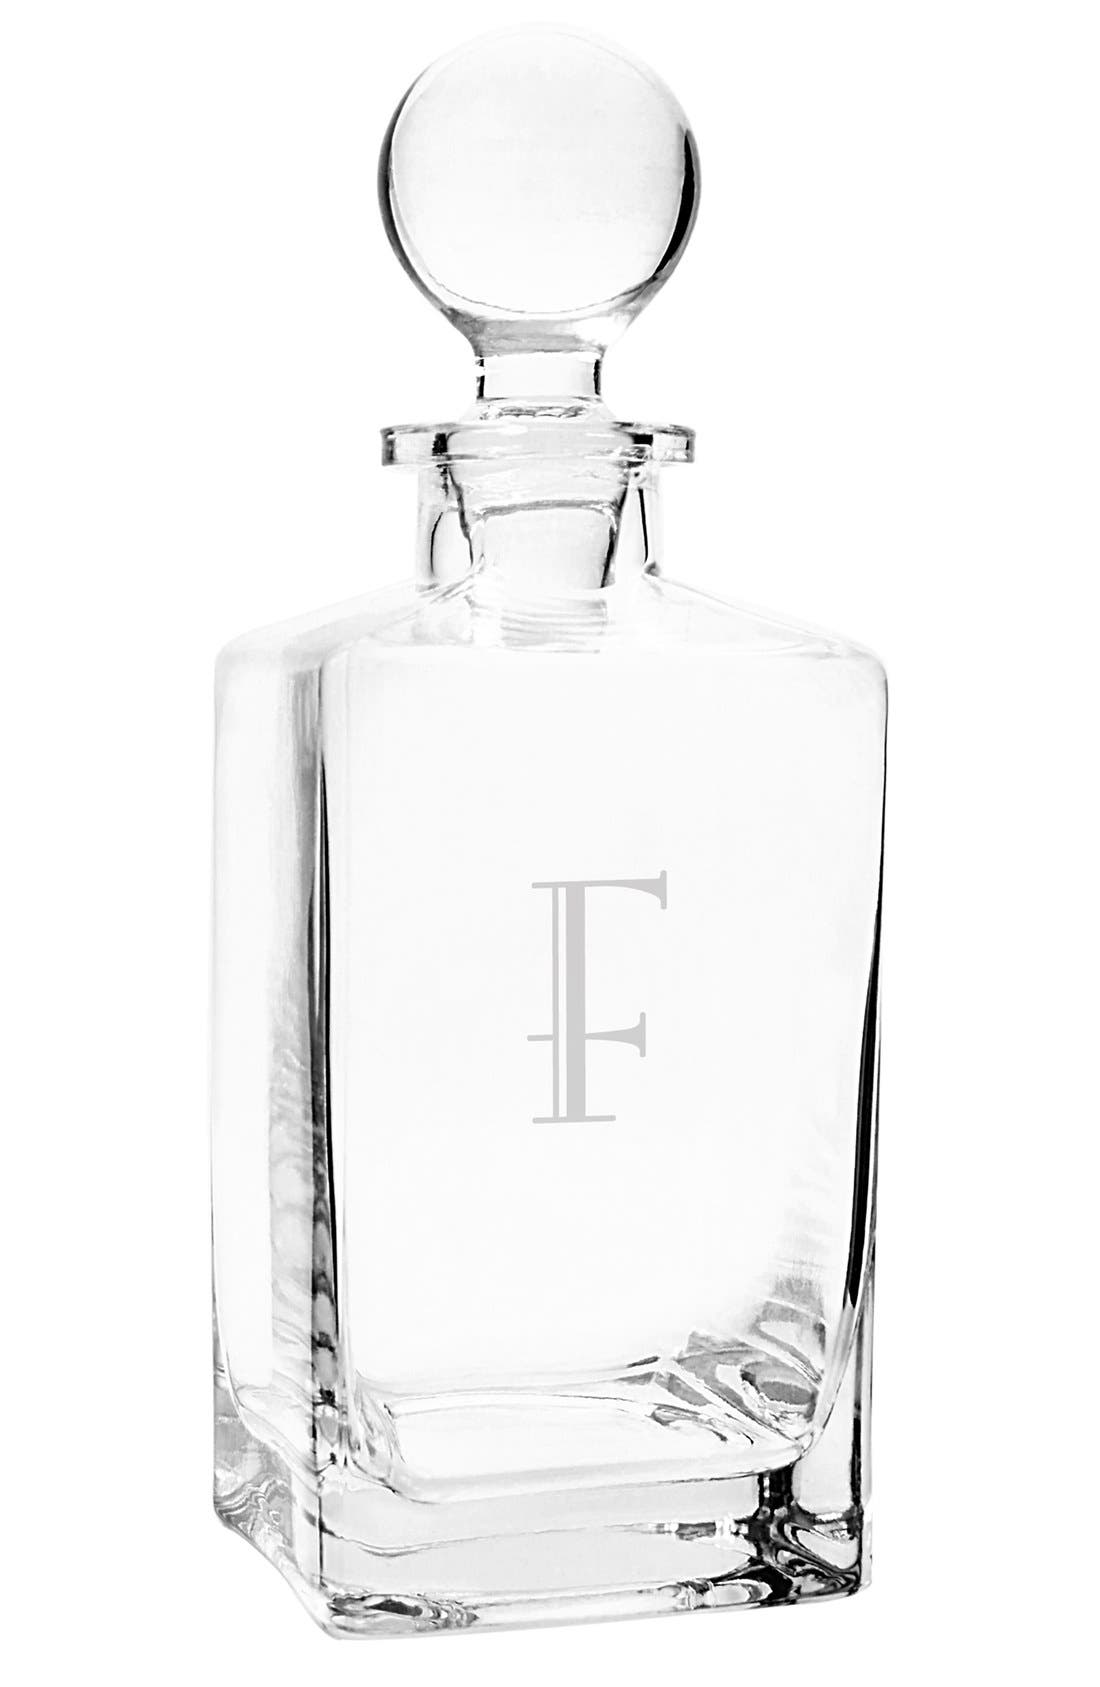 Main Image - Cathy's Concepts Monogram Whiskey Decanter & Stopper